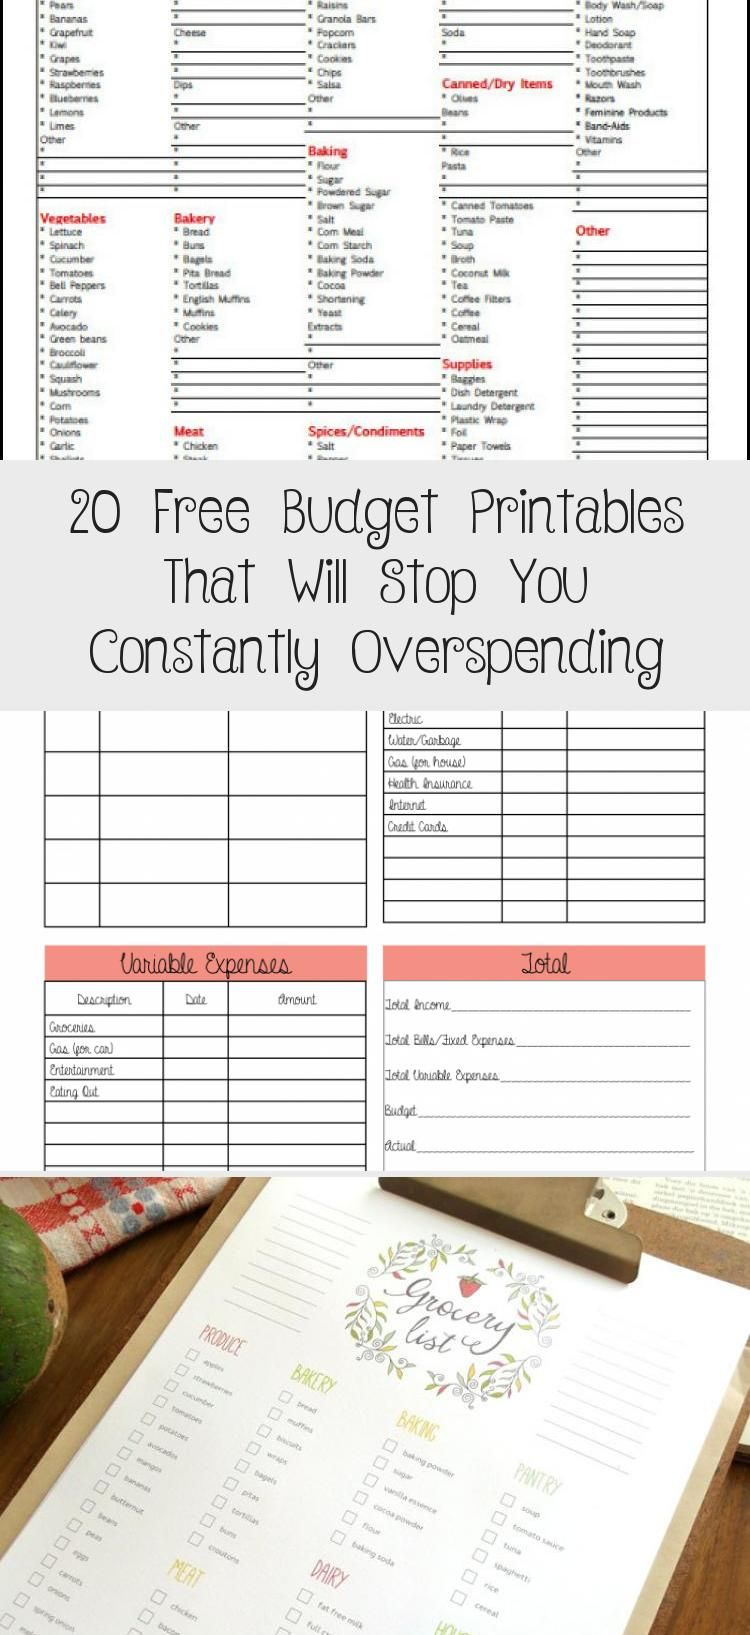 20 Free Budget Printables That Will Stop You Constantly